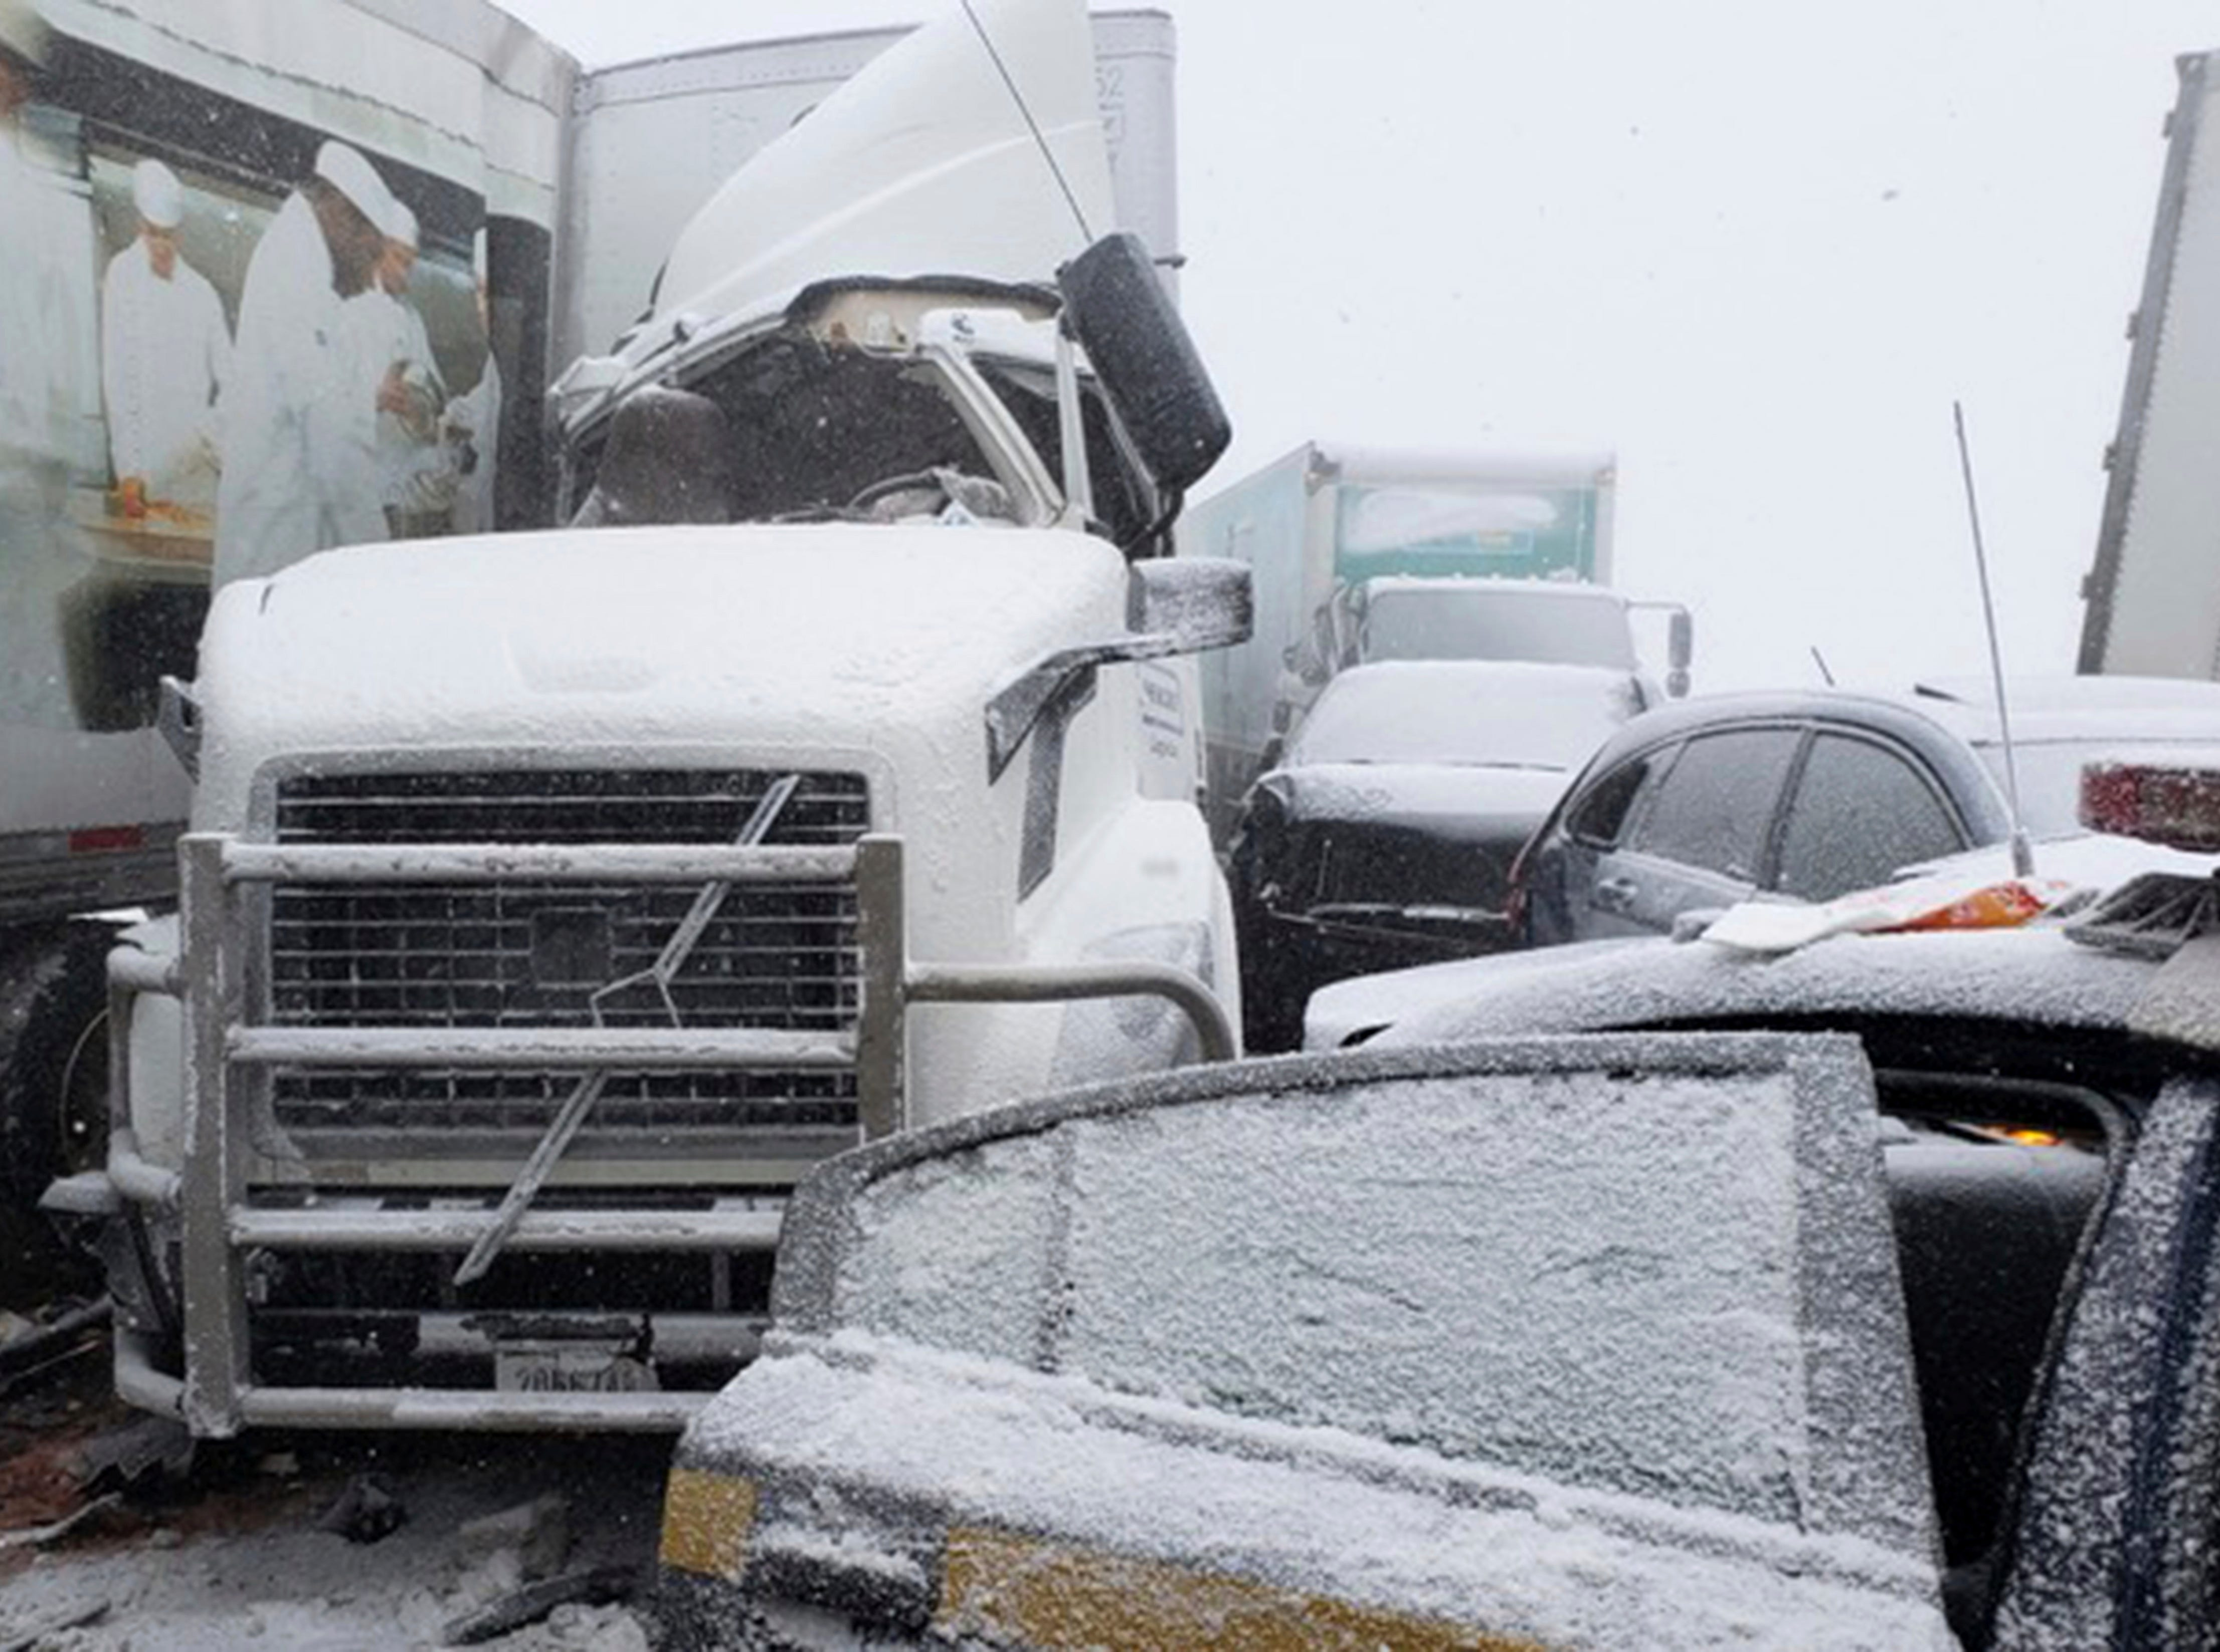 In this Wednesday, Jan. 30, 2019 photo, cars and trucks are part of a 21 vehicle pileup in Batavia, N.Y. Police say the crash shut down the New York State Thruway where heavy snow and high winds made driving treacherous.